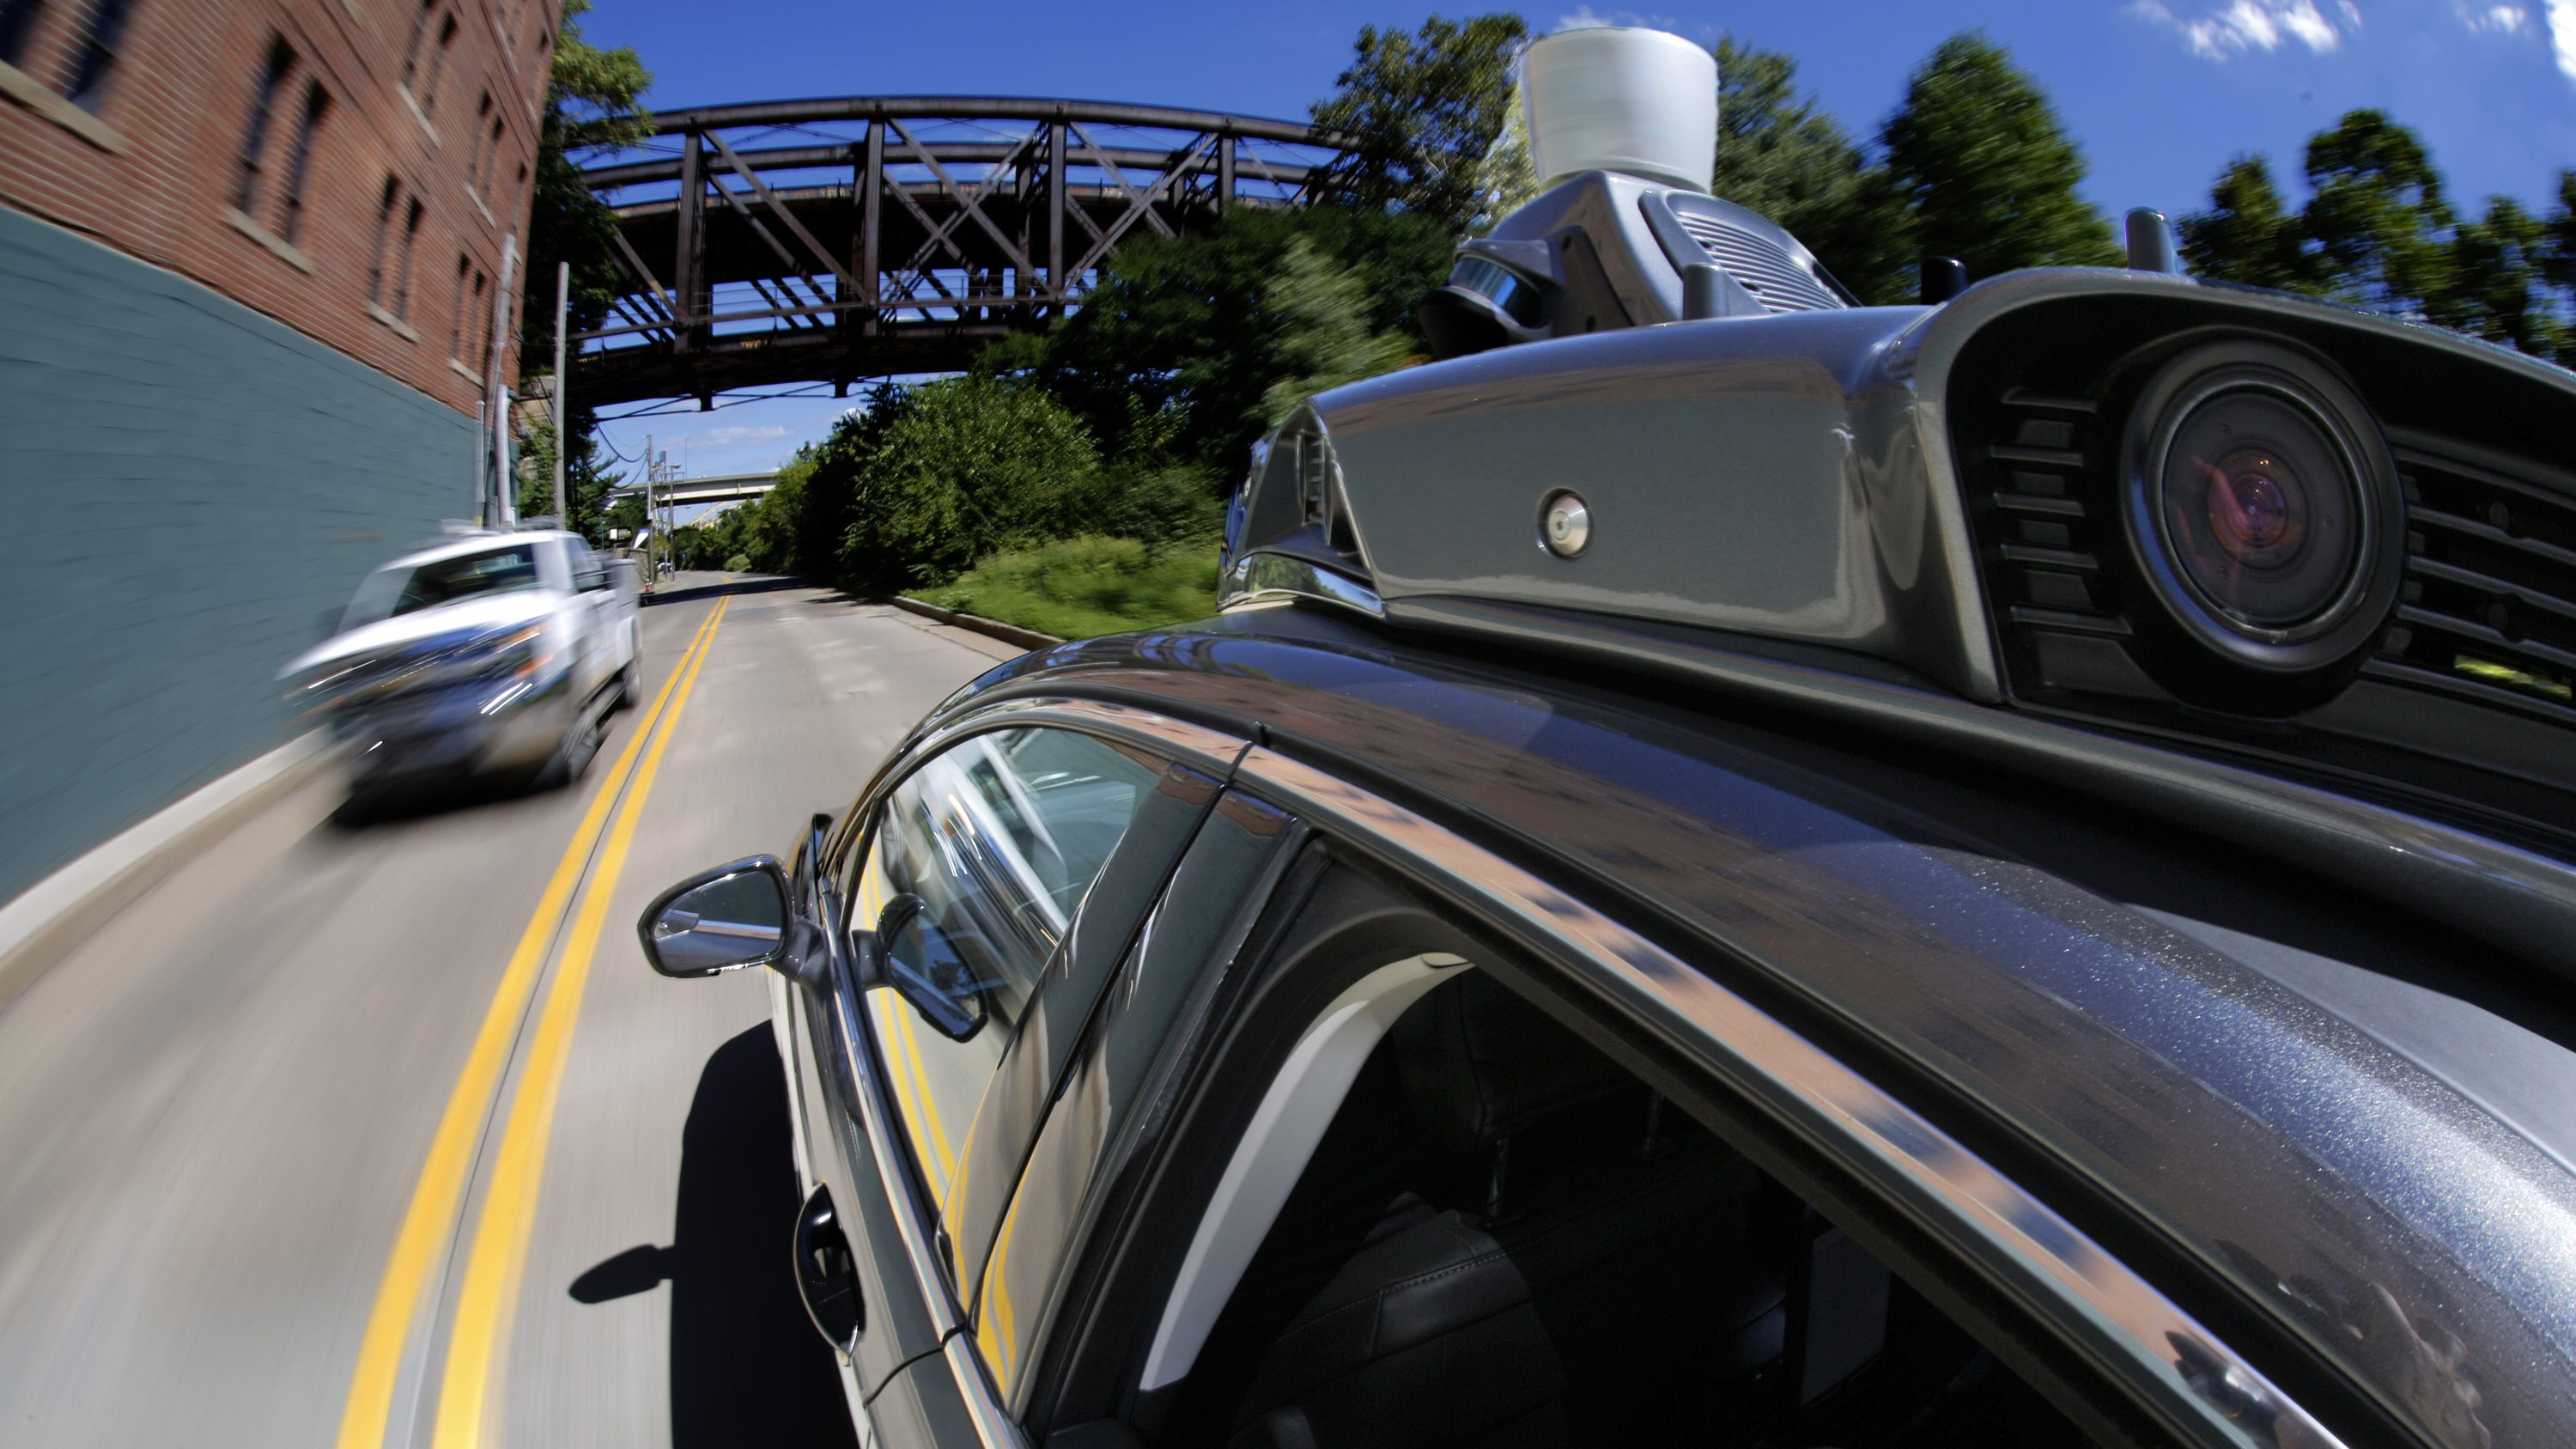 In this Monday, Sept. 12, 2016, photo, a self-driving Uber drives in Pittsburgh during a media preview. Starting Wednesday, Sept. 14, 2016, dozens of self-driving Ford Fusions will pick up riders who opted into a test program with Uber. While the vehicles are loaded with features that allow them to navigate on their own, an Uber engineer will sit in the driver's seat and seize control if things go awry. (AP Photo/Gene J. Puskar)